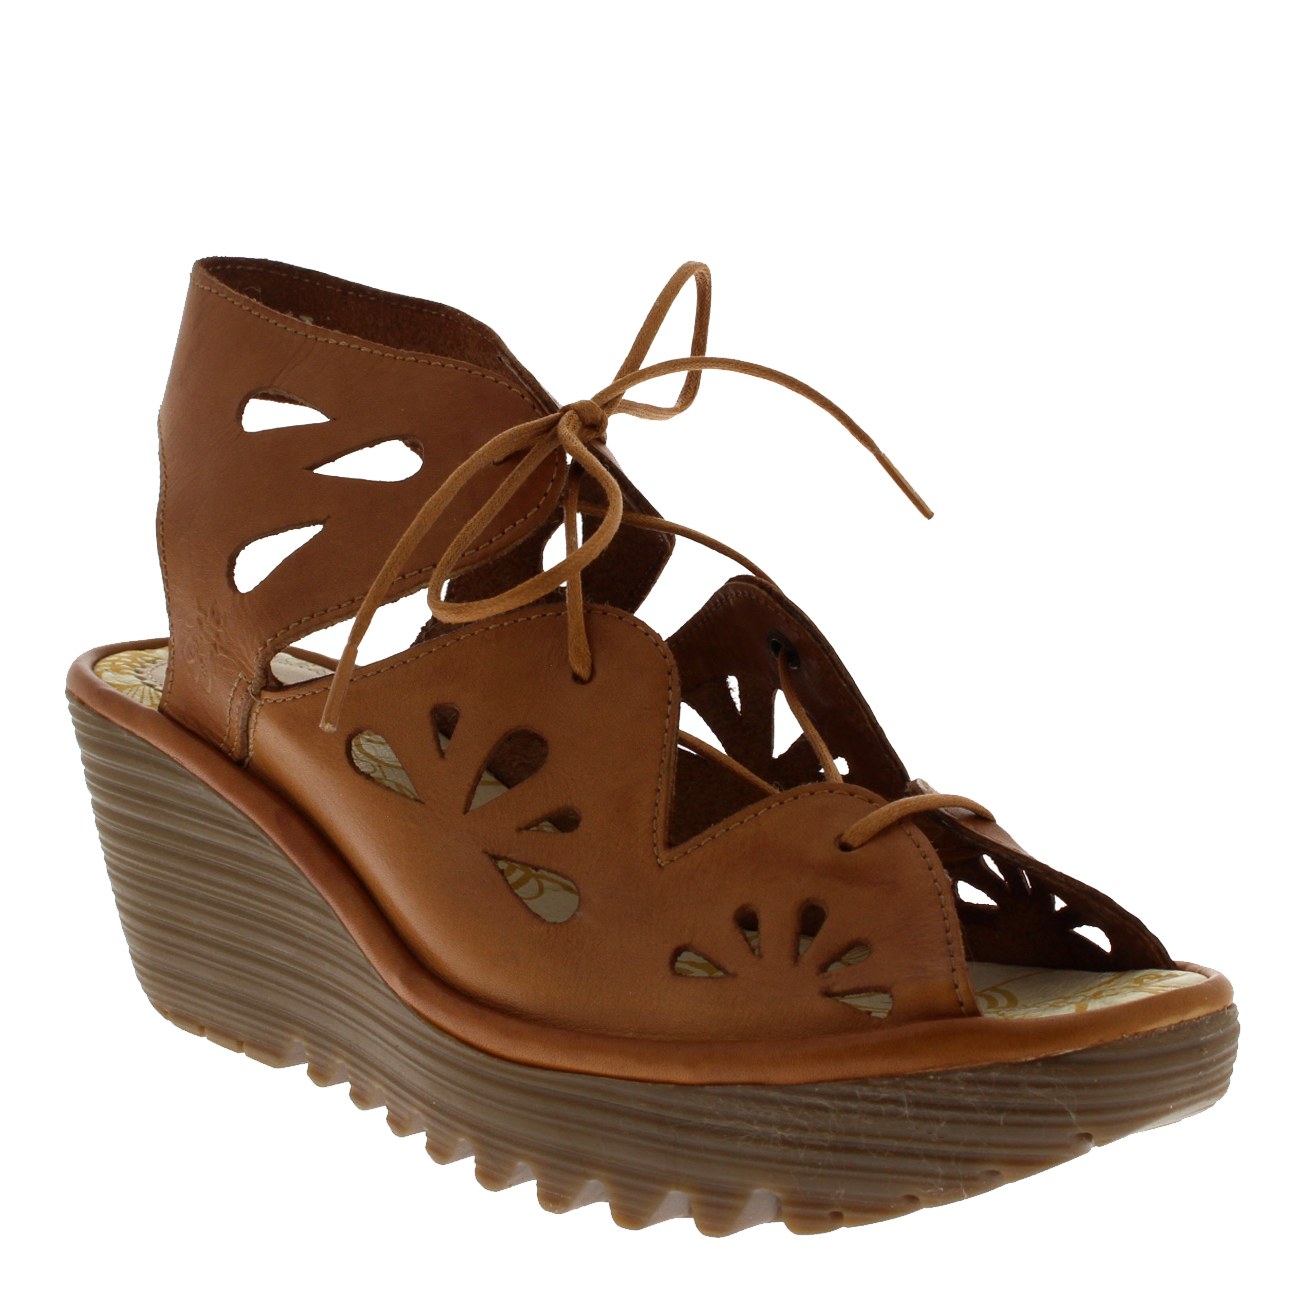 Ladies Fly London London London Yote Leather Mid Heel Wedges Lace Up Holiday Sandals All Sizes e66ac5